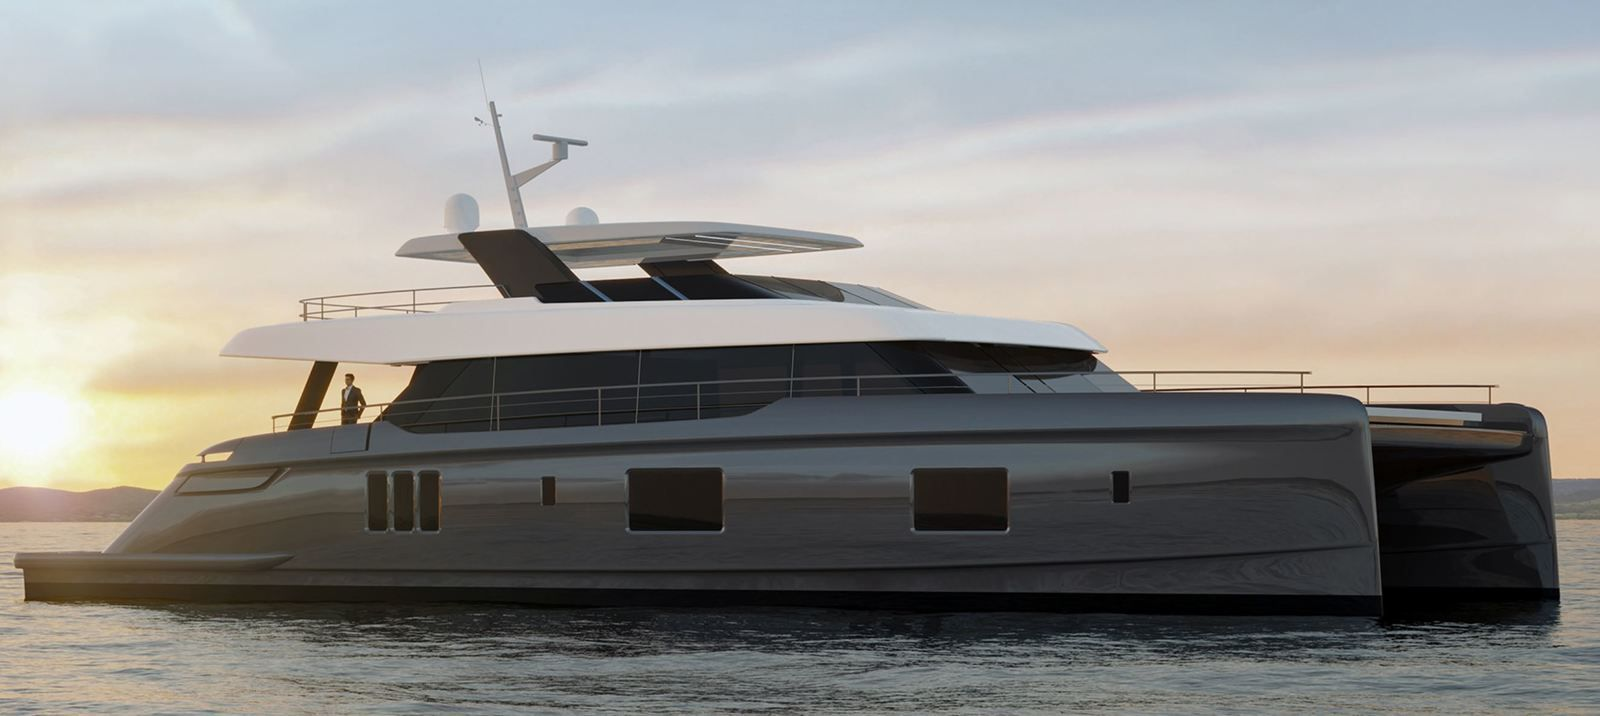 Yachting - Sunreef Yachts signs the sale of a 100-foot motoryacht mega-catamaran!